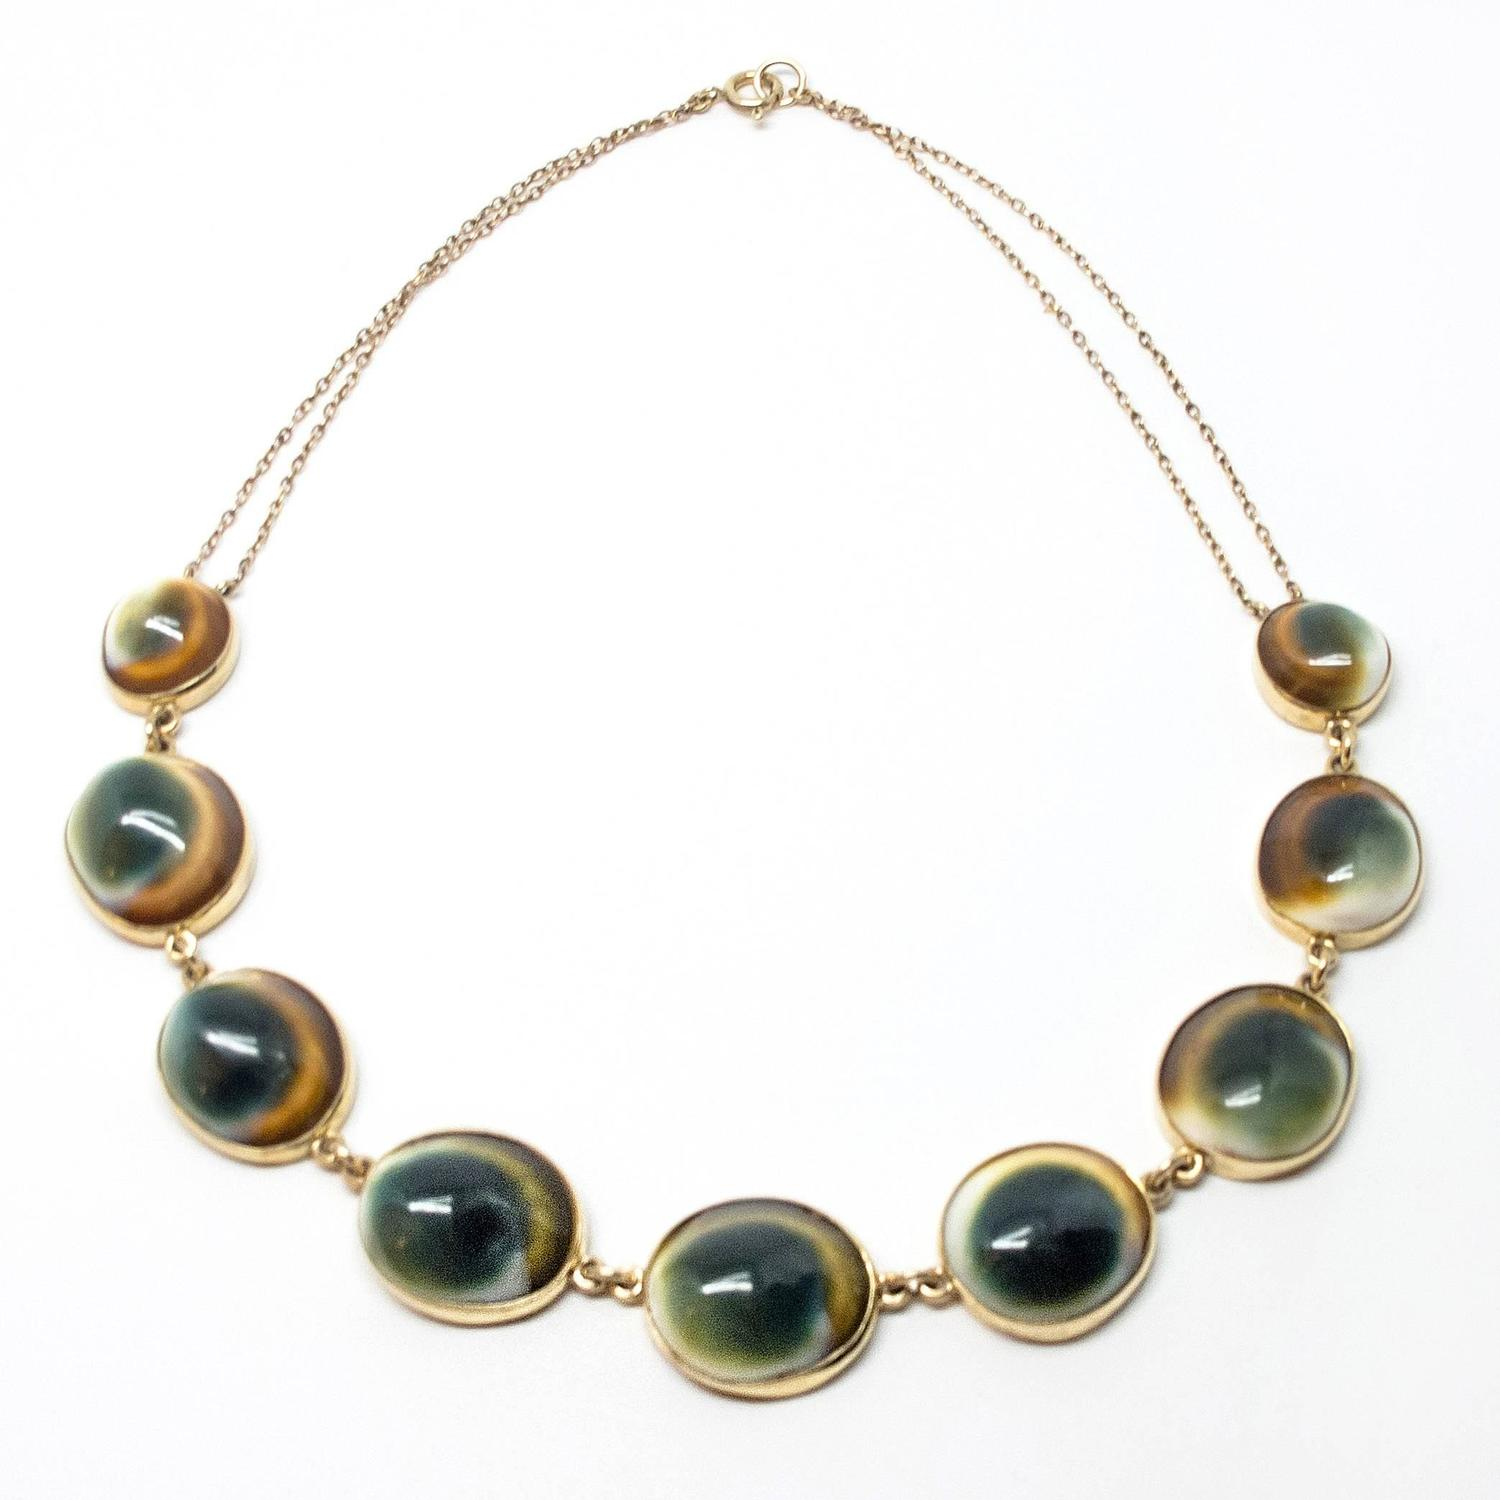 Exhibition Shell Necklace : Antique operculum shell gold necklace for sale at stdibs